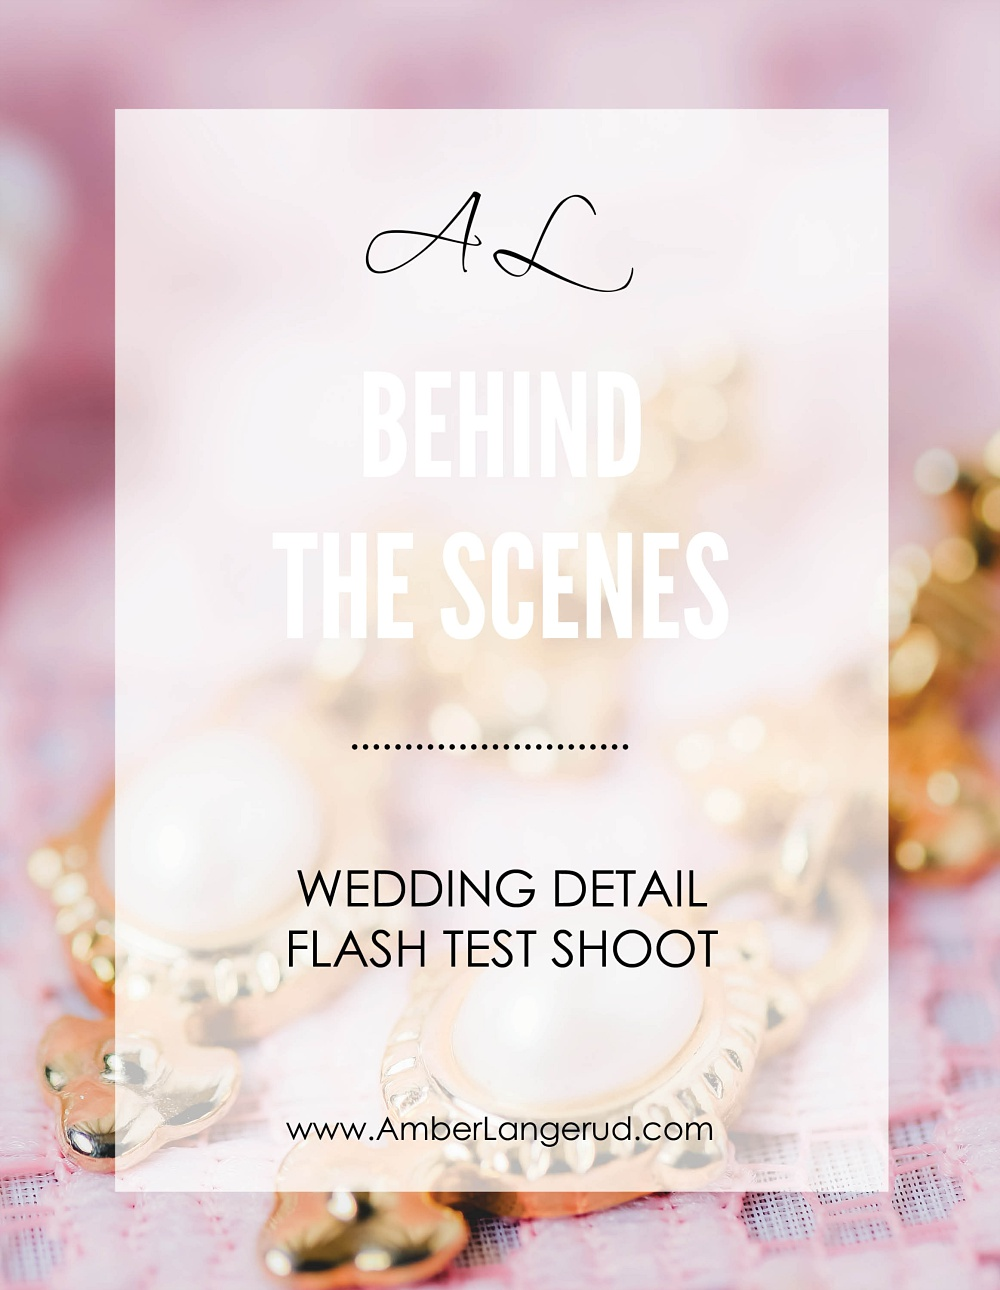 WEDDING DETAILS | How to Shoot with Flash